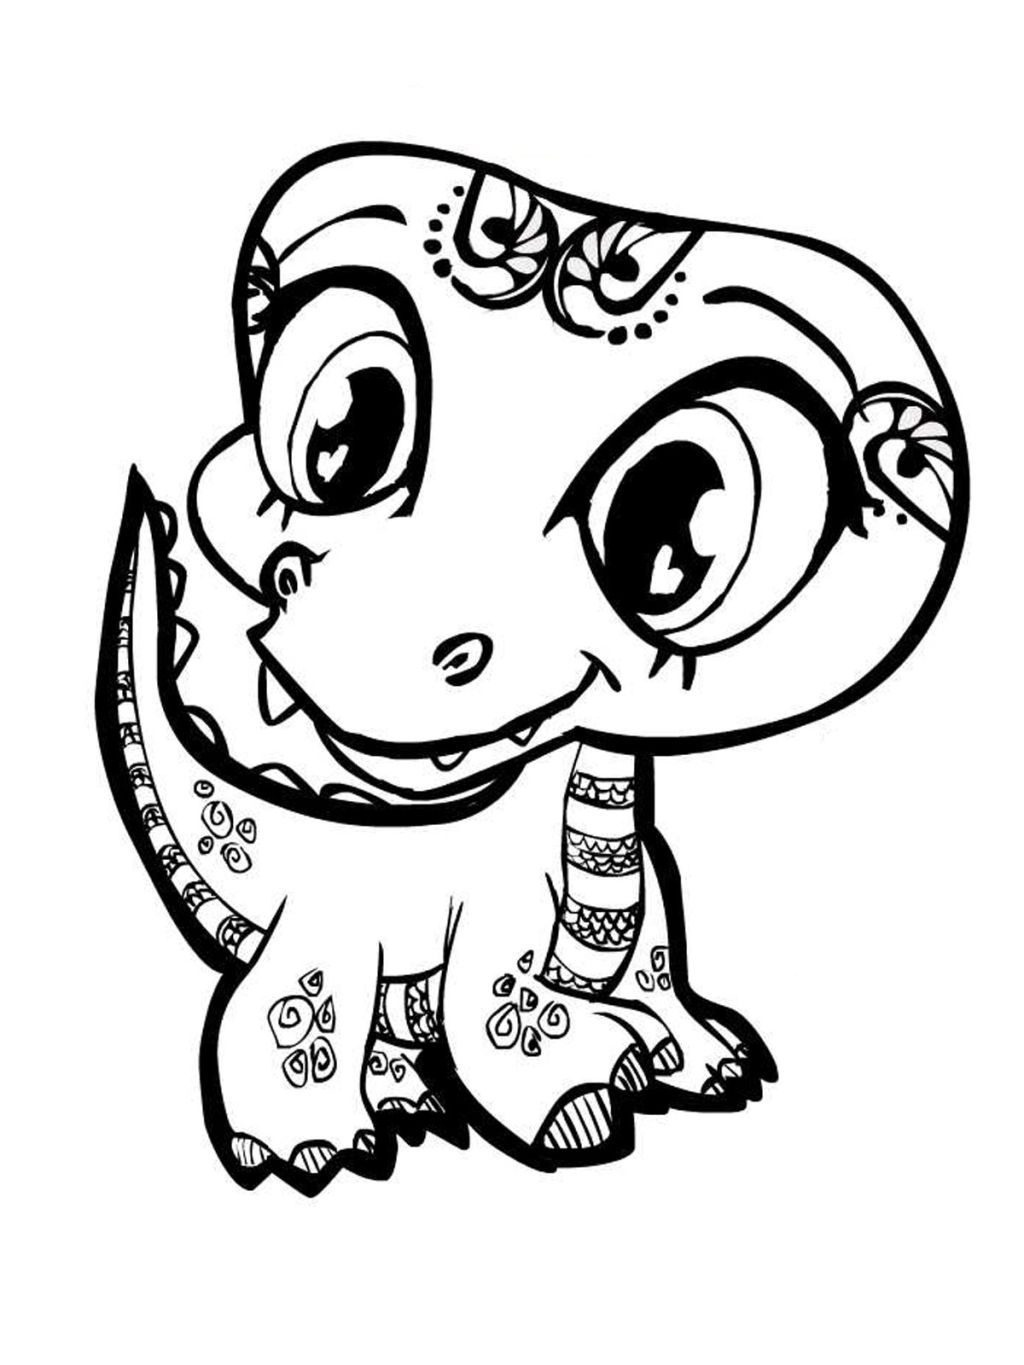 Coloring Ideas : Cute Animals Coloring Pages Baby Animal Packed With - Free Printable Pictures Of Baby Animals